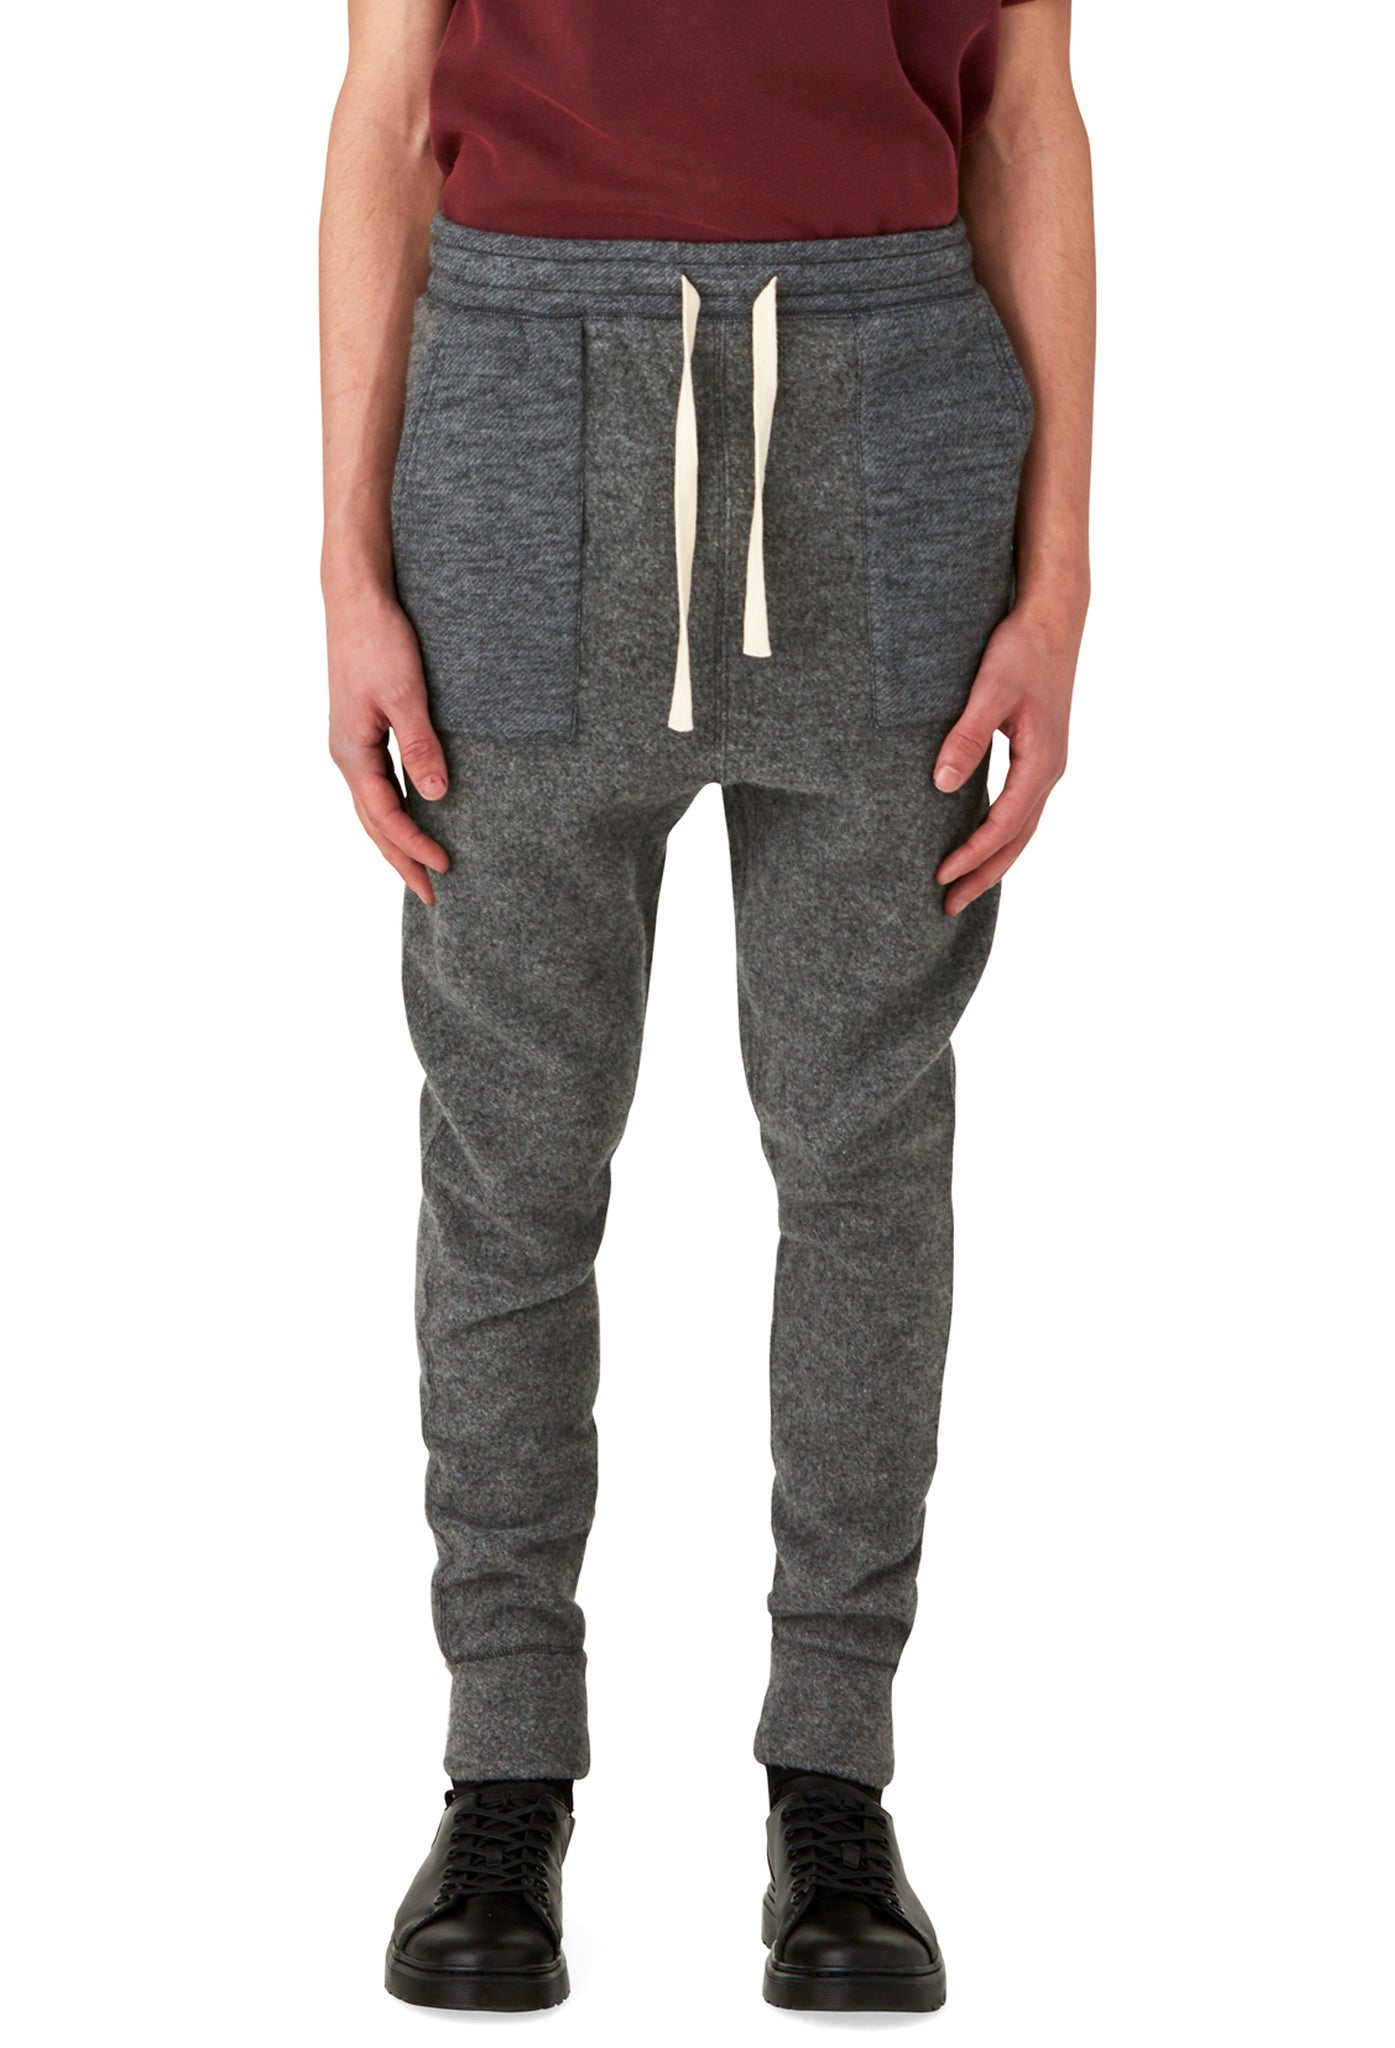 ROCKINGHAM - PANT - HEATHER GREY